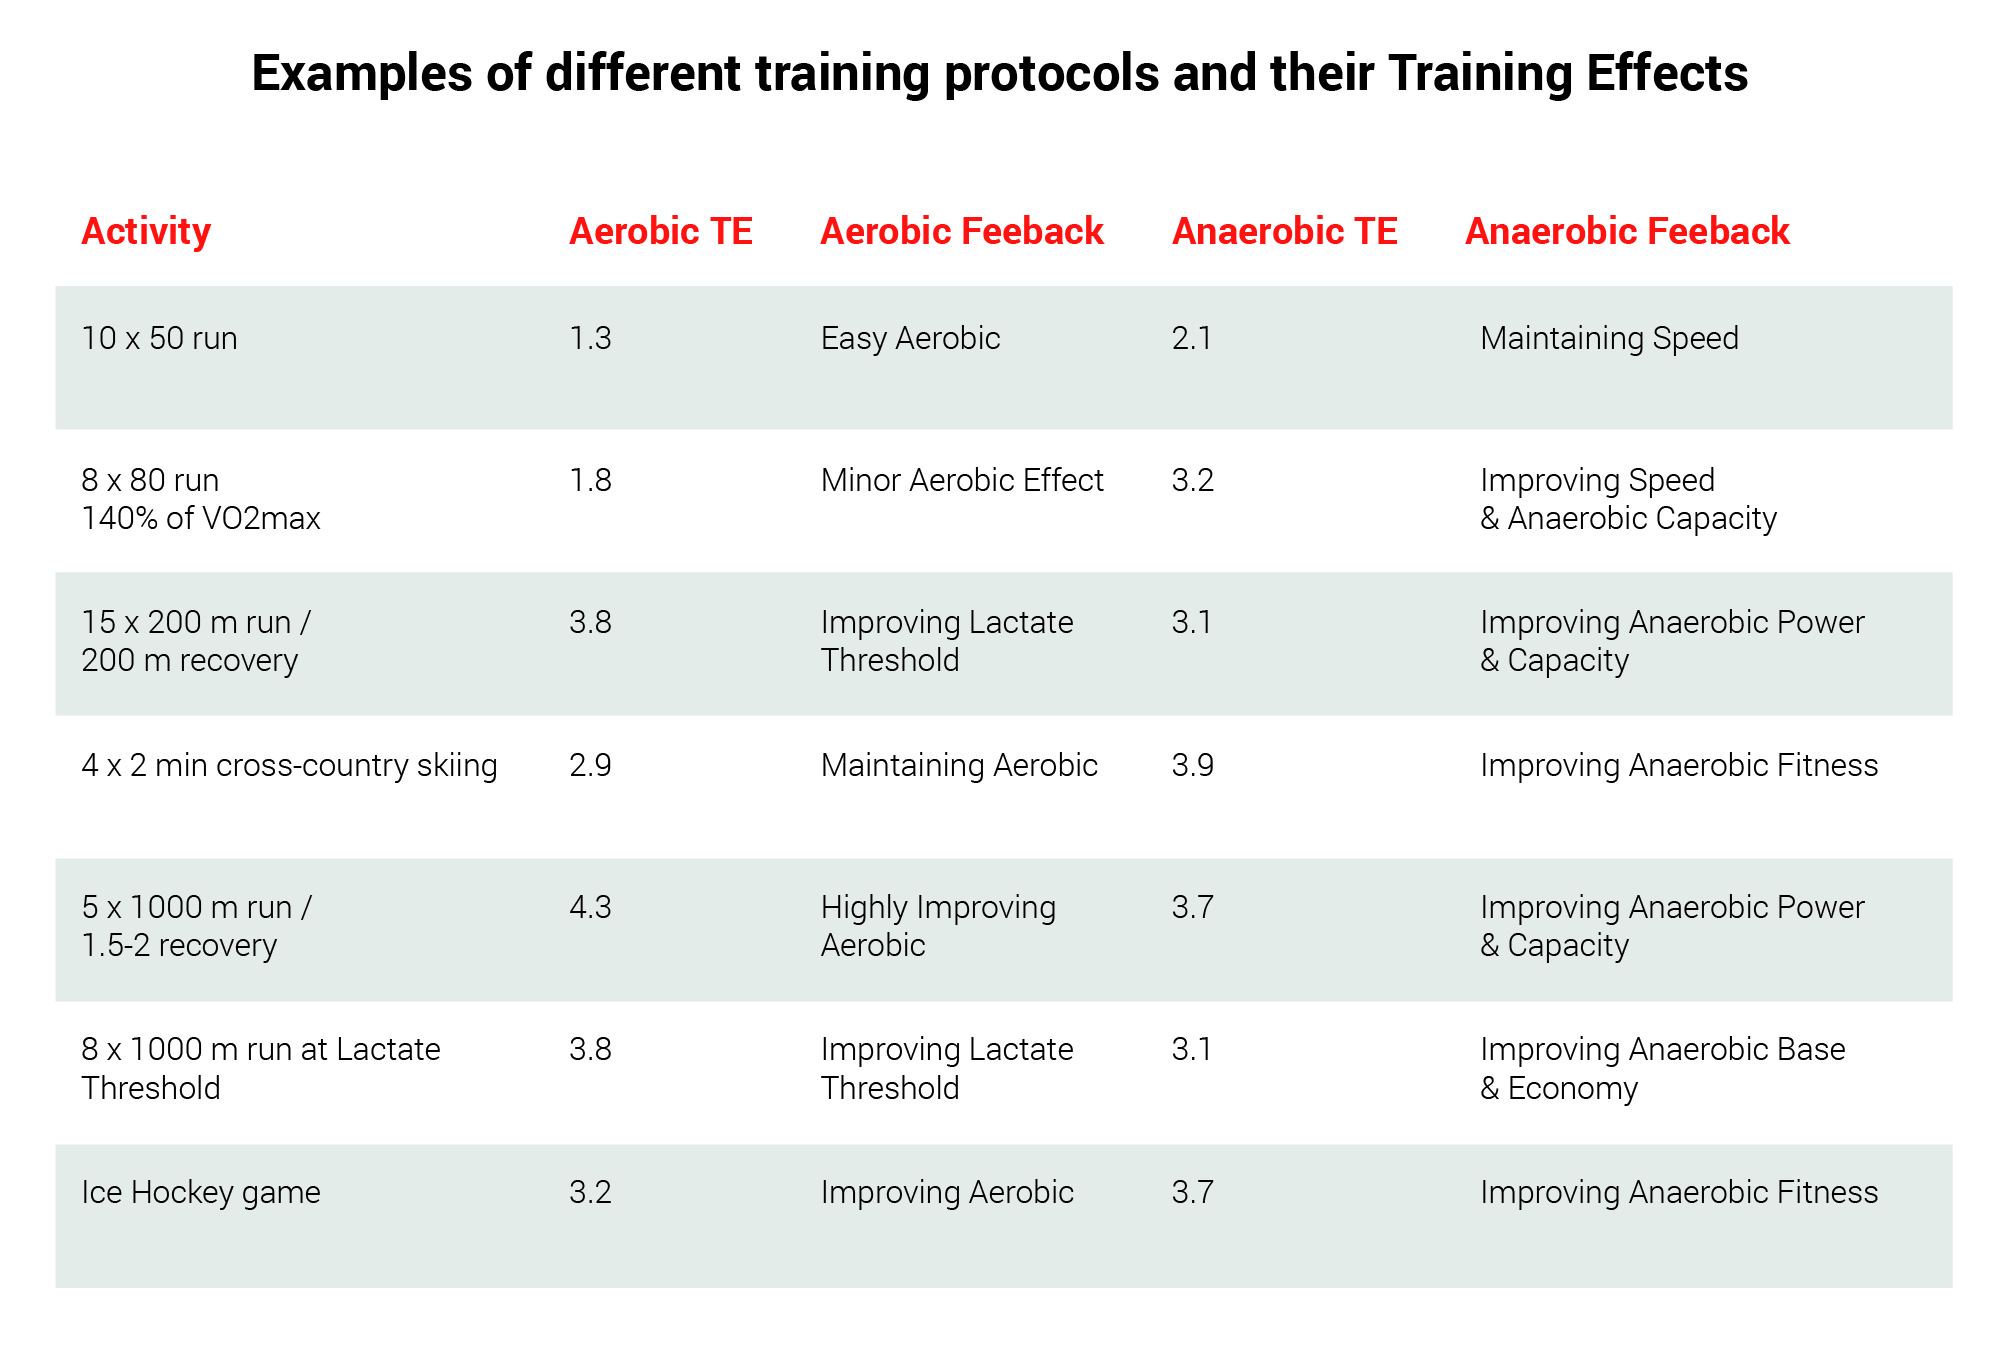 Training Effect chart: Different training protocols provide different Training Effects